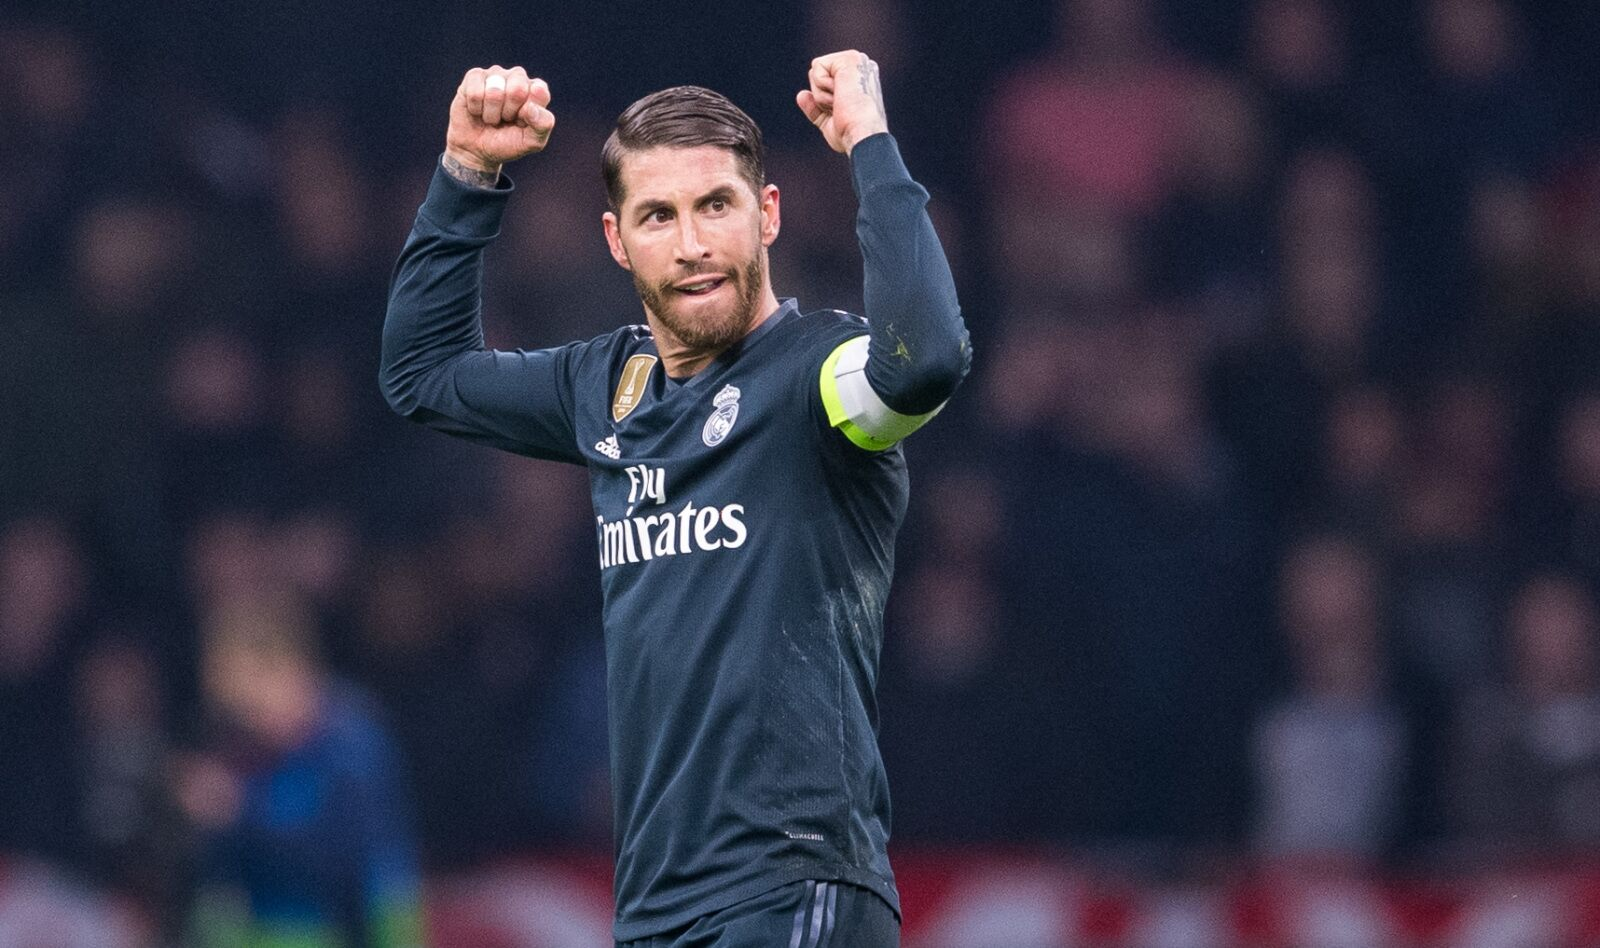 Sergio Ramos forces Real Madrid to sell superstar for cheap to prevent dressing room feuds